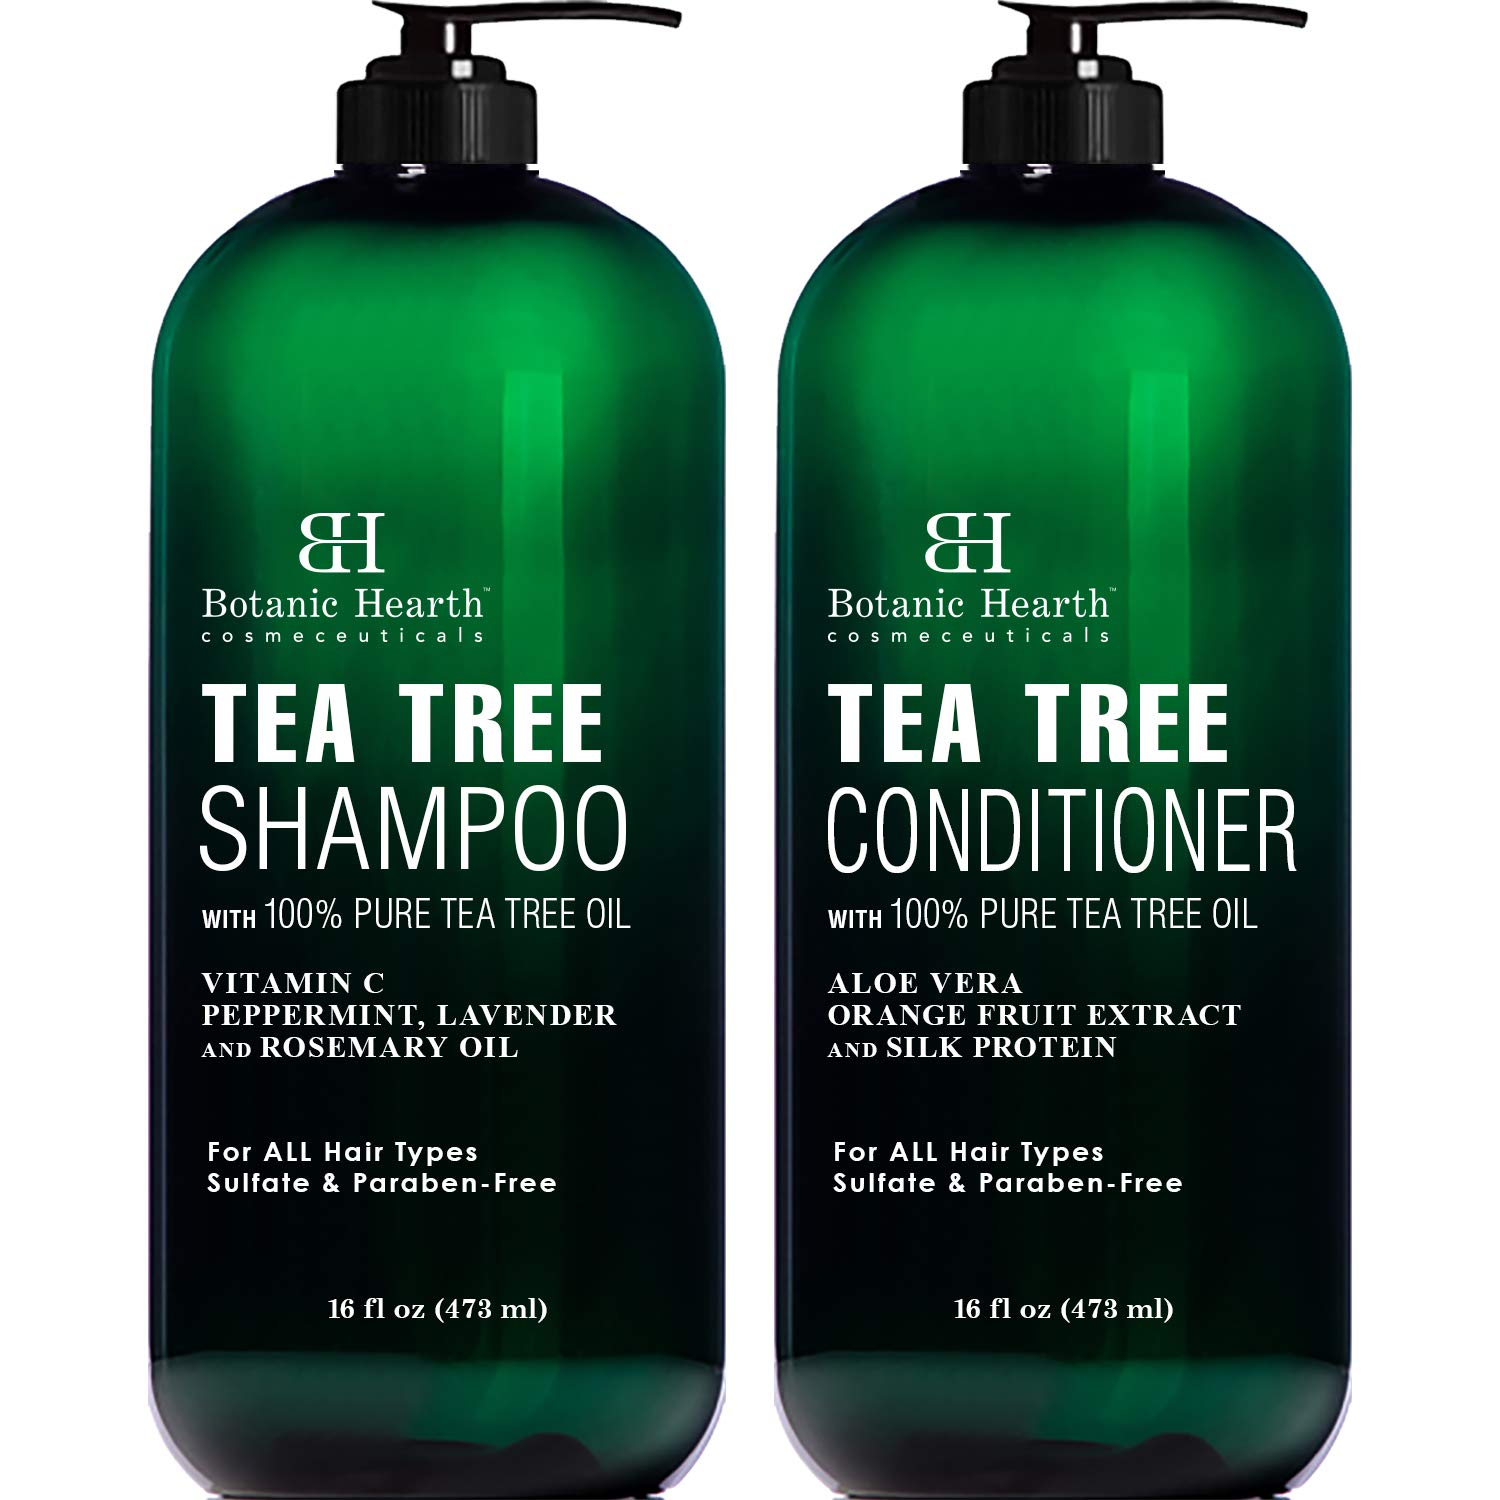 Botanic Hearth Tea Tree Shampoo and Conditioner Set – with 100% Pure Tea Tree Oil, for Itchy and Dry Scalp, Sulfate Free, Paraben Free – for Men and Women – 2 bottles 16 fl oz each